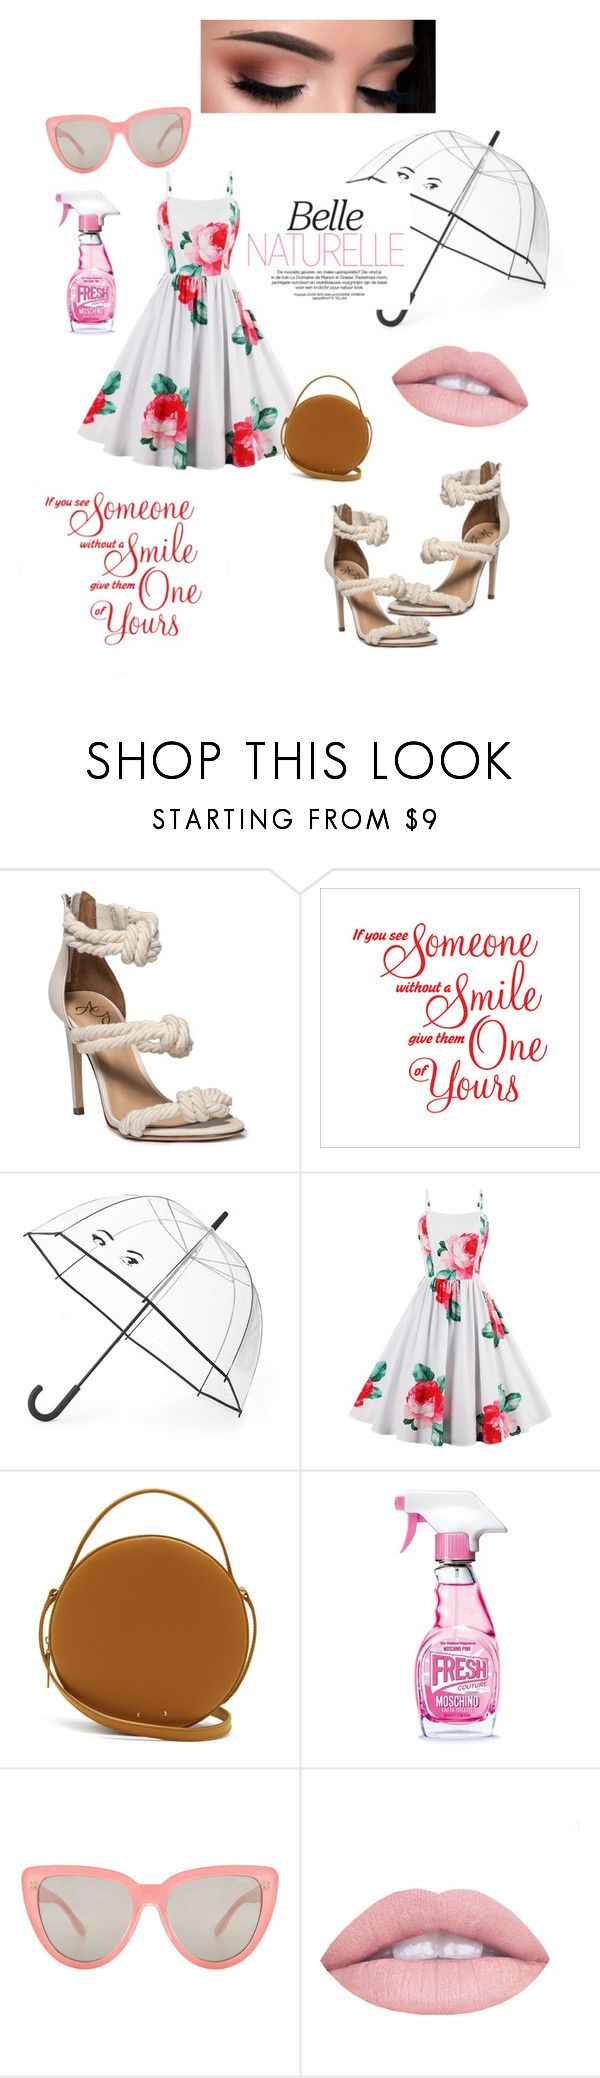 """southernbelle"" by niania-long ❤ liked on Polyvore featuring Kate Spade, PB 0110, Moschino, Quay and L.A. Girl"